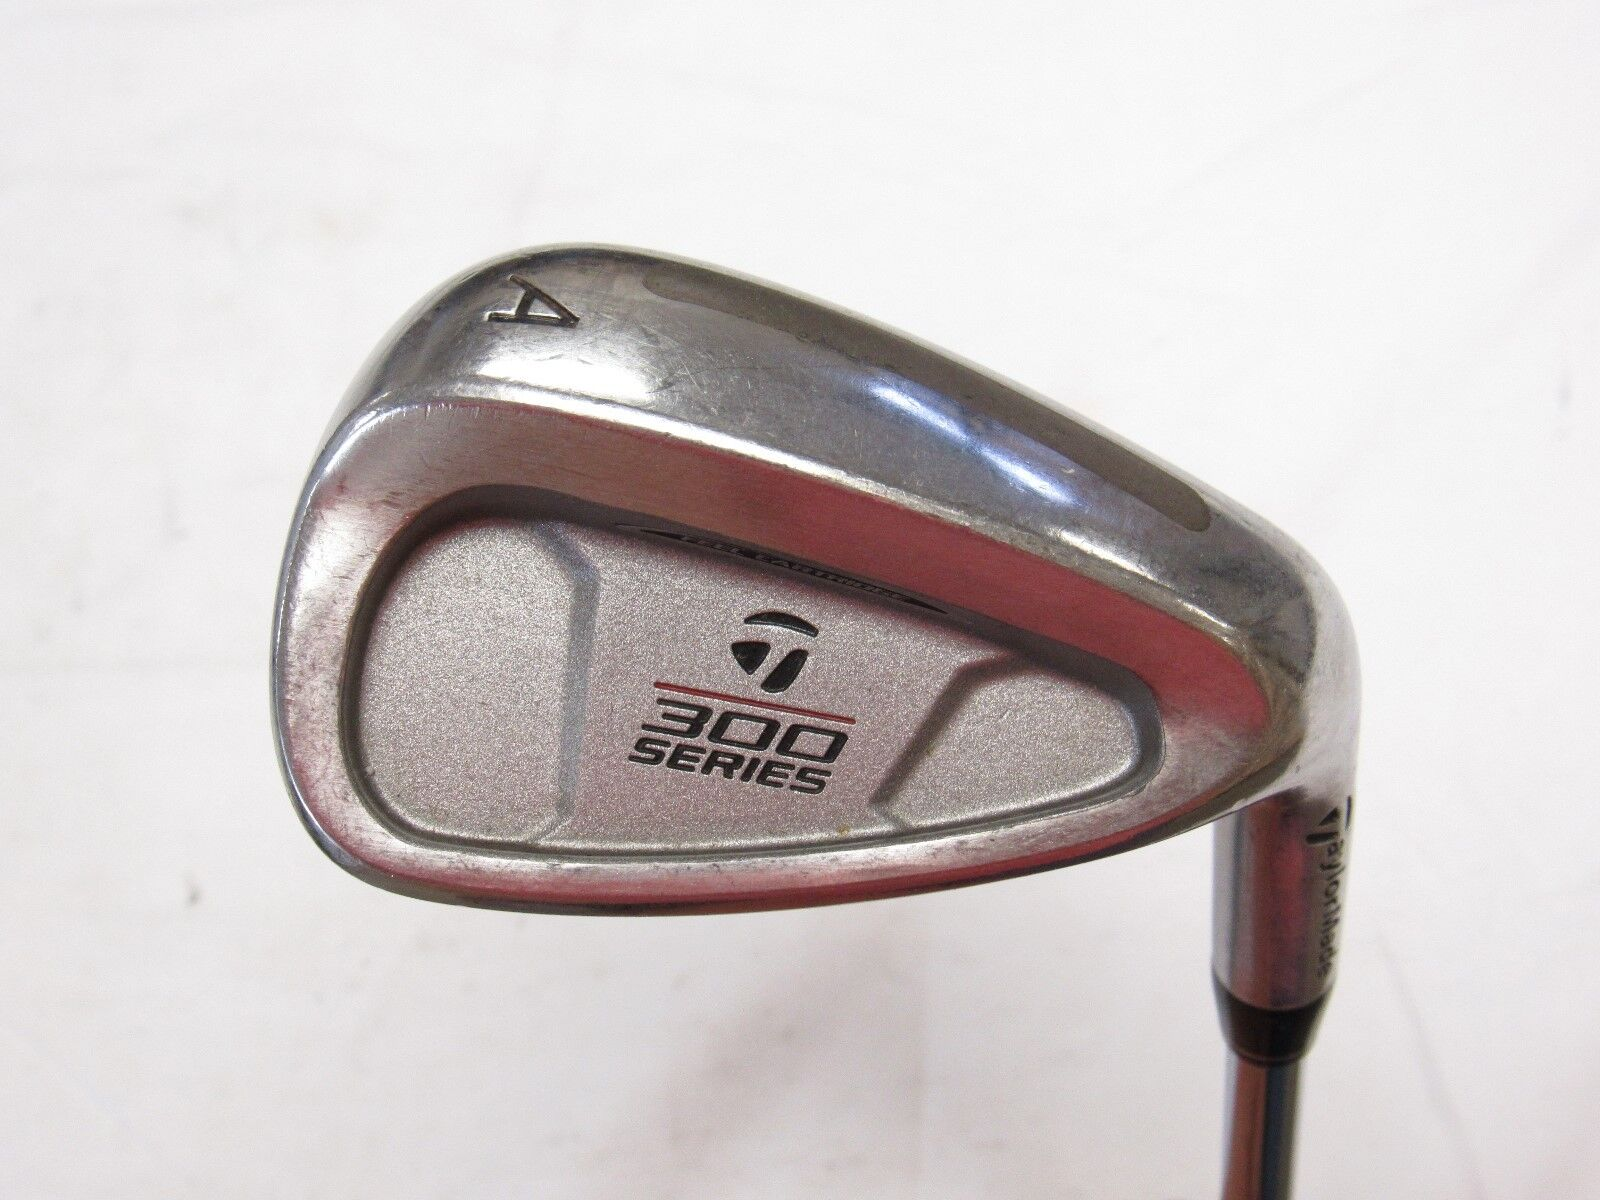 Used RH Taylormade 300 Series Gap A Wedge TaylorMade Rifle 80 Steel Regular Flex